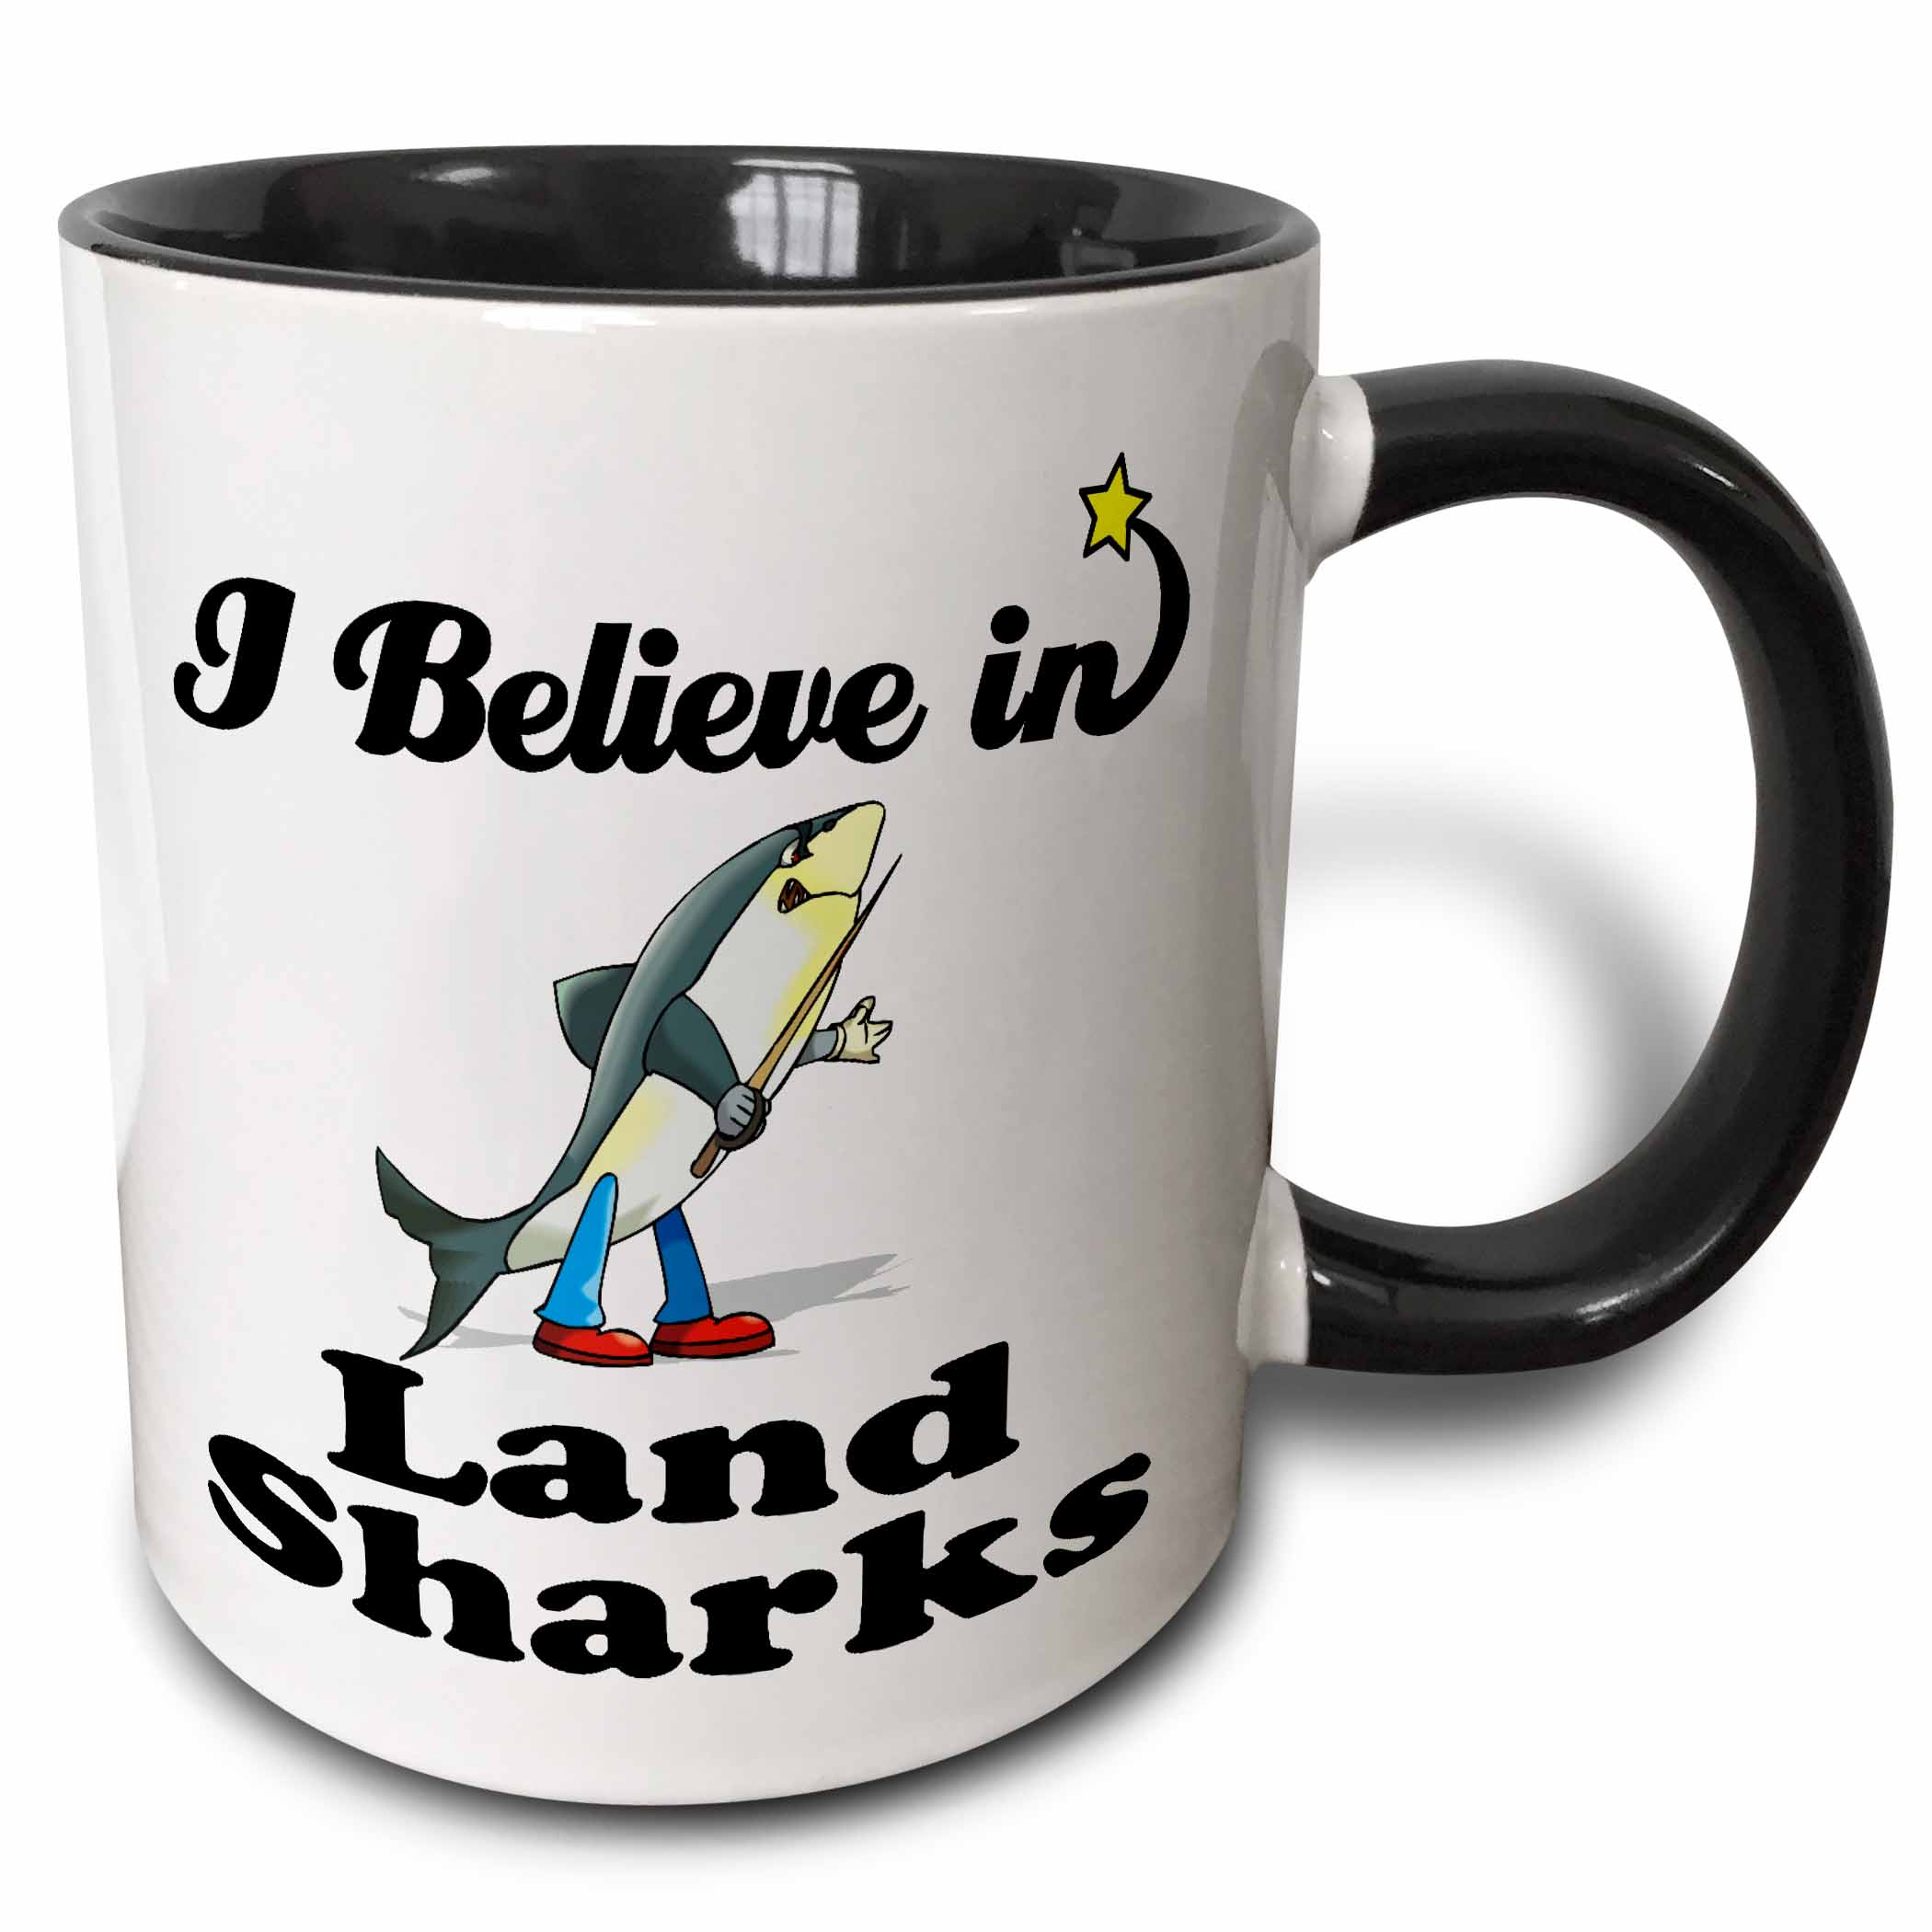 3dRose I Believe In Land Sharks, Two Tone Black Mug, 11oz